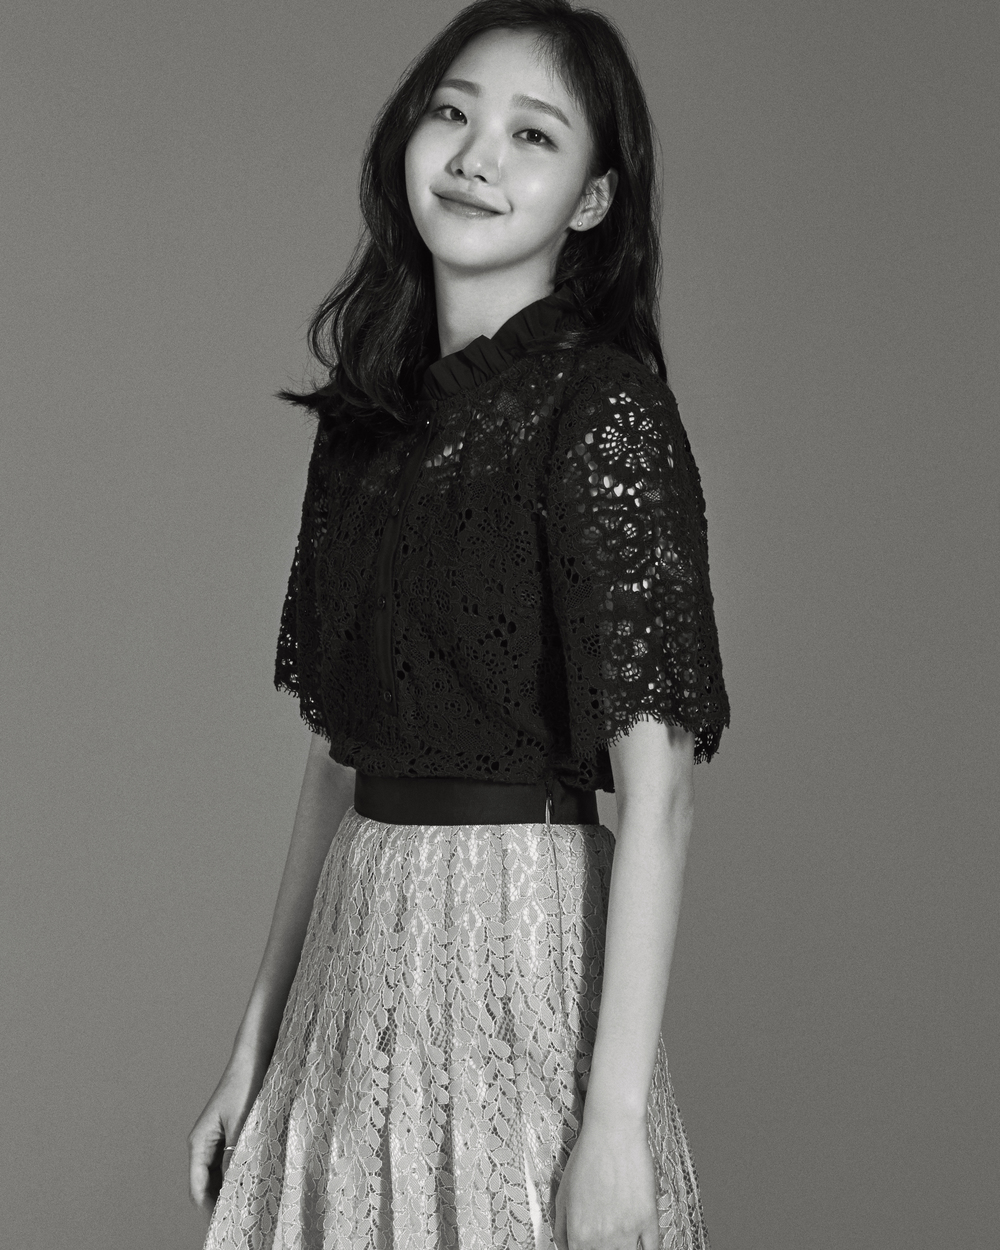 <p>After he appeared in the movie world with his dreaming girl A Muse, a modifier like 2 nd Kim Go-eun 2 nd A Muse was born. Kim Go-eun asked, Why do you have to stop writing that word? Laughing and asking. In addition to humility, attention to colleagues actors adhered.</p><p>They called second Kim Go-eun they are Girls Debut debut with Female, Burning before Vertical writing, and the main character Gimdami of the recently released movie Witch. Missy and Burning interestingly saw Witch, the latest work and Kim Go-eun who have not seen it yet I think that everyone is really amazing Digg, who was wonderful as an actor, feeling wanting to cheer And Kim Go-eun second Kim Go-eun should not stop quitting. Very embarrassing. I said.</p><p>Nonetheless, the presence of Kim Go-eun in A Muse is amazing and its persistence remains for such a long time. Kim Go-eun said, When I was 21 years old I took A Muse . It is when there are many parts that I have not experienced yet. There was also gratitude for starting the work with the starring, but there were responsibilities and burdens as well. In the case of 21 years old there is a spectrum for acting, I thought of wanting to take a lot of things in a short period of time by taking a rustling A Muse and expanding himself more.  .</p><p>After that Kim Go-eun was born as a Korean star in the tvN drama Ogre through various characters and characters such as the movie Hyo Junyo, Memory of Knife and Chinatown and Angry Lawyer. When choosing a work, it was very important to breathe with seniors, he said, It was necessary to have a terrible work to appear, to broaden the spectrum, maybe I could ignore it, but I Although I chose a work in a direction that can develop better than the best, I seemed to have helped in various ways from now, I did not choose a nice one. </p><p>Next, is the current performance spectrum widely supported from at least A Muse ? Recently it is a place to worry about What is a pro?  It was also called I wonder what it means to be a professional as it was feeling that there was a lot of trial and error when debuting as a child.</p><p>There is no burden of A Muse attached like a tag. Kim Go-eun always listened to the question I do not want to erase A Muse , but A Muse is my first work and a masterpiece. It is an honor to have a masterpiece.  On the other hand, Of course, if I feel A Muse of all my images I guess its going wrong but it is nice to have A Muse among some things that qualify me It added.</p><p>Meanwhile, the movie Byeonsan (Director Lee Jun Ik) who is waiting for release on July 4 is forced to summon to the hometown Byeonsan full of black history with hints and tricks of unrequited Sunmi (Kim Go-eun) at the distorted twist moment It is a pleasant drama depicting the biggest crisis in life of Parkaxen Hakusaku (Park Jung - min) was done. Kim Go-eun is an invincible man who compulsively summons to his hometown Byeonsan his unknown rapper classmate Hakusu (Park Jung-min minutes), and is an unrestrained stone straightball Alumnus who breathes the power of the play Sunmi role I accepted.</p>